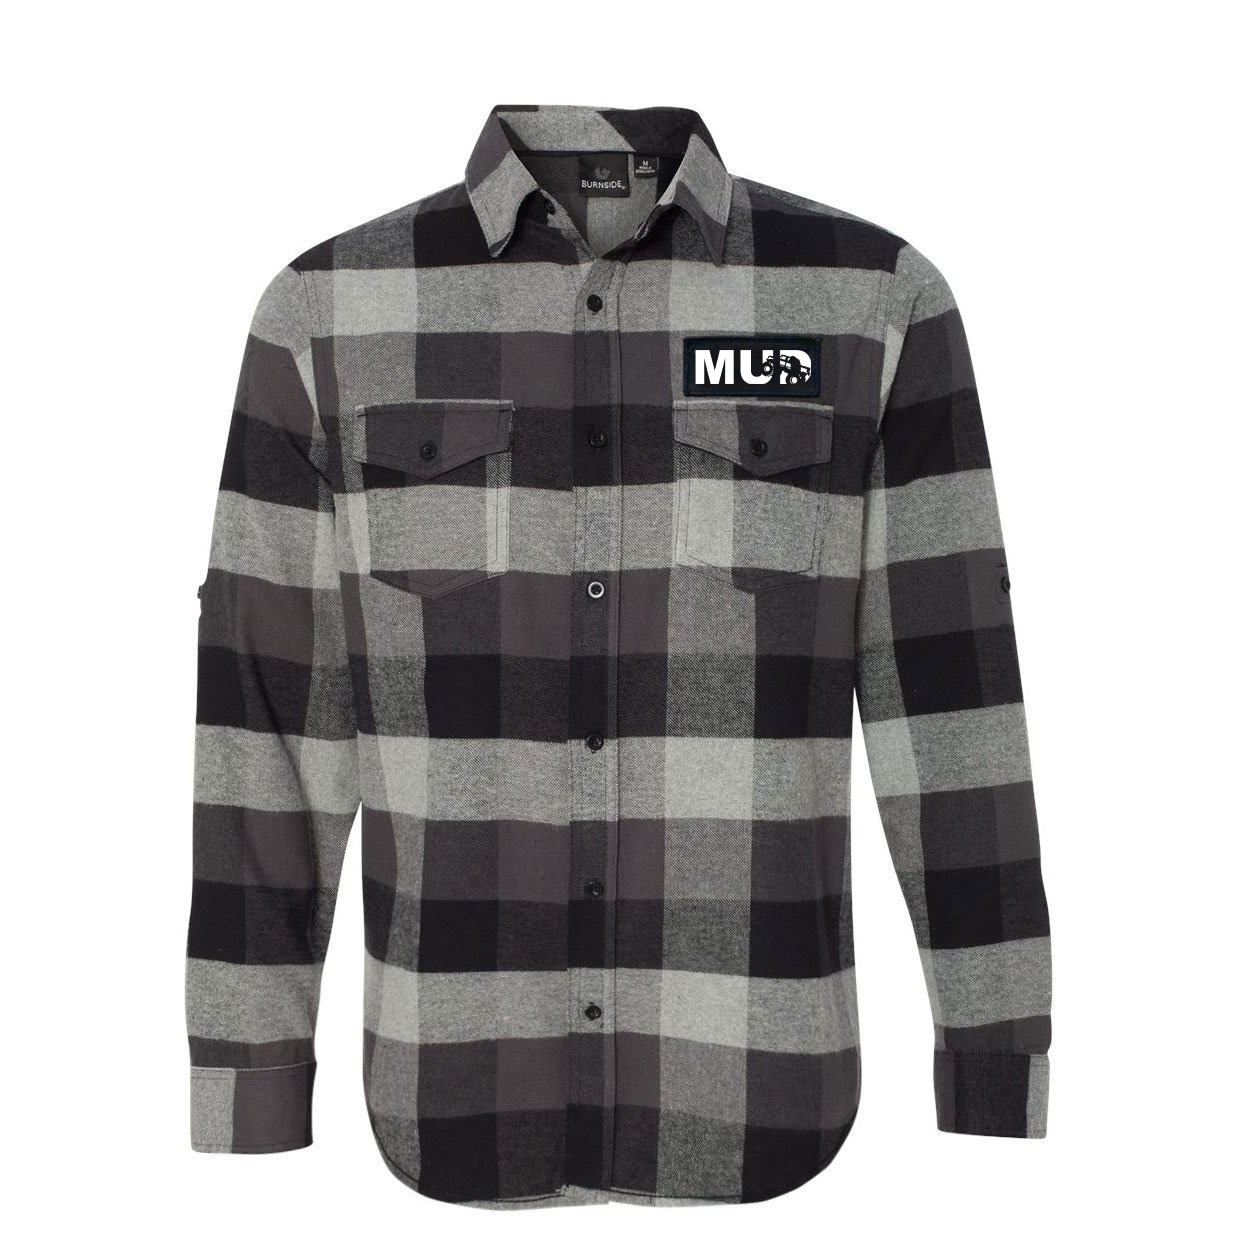 Mud Truck Logo Classic Unisex Long Sleeve Woven Patch Flannel Shirt Black/Gray (White Logo)